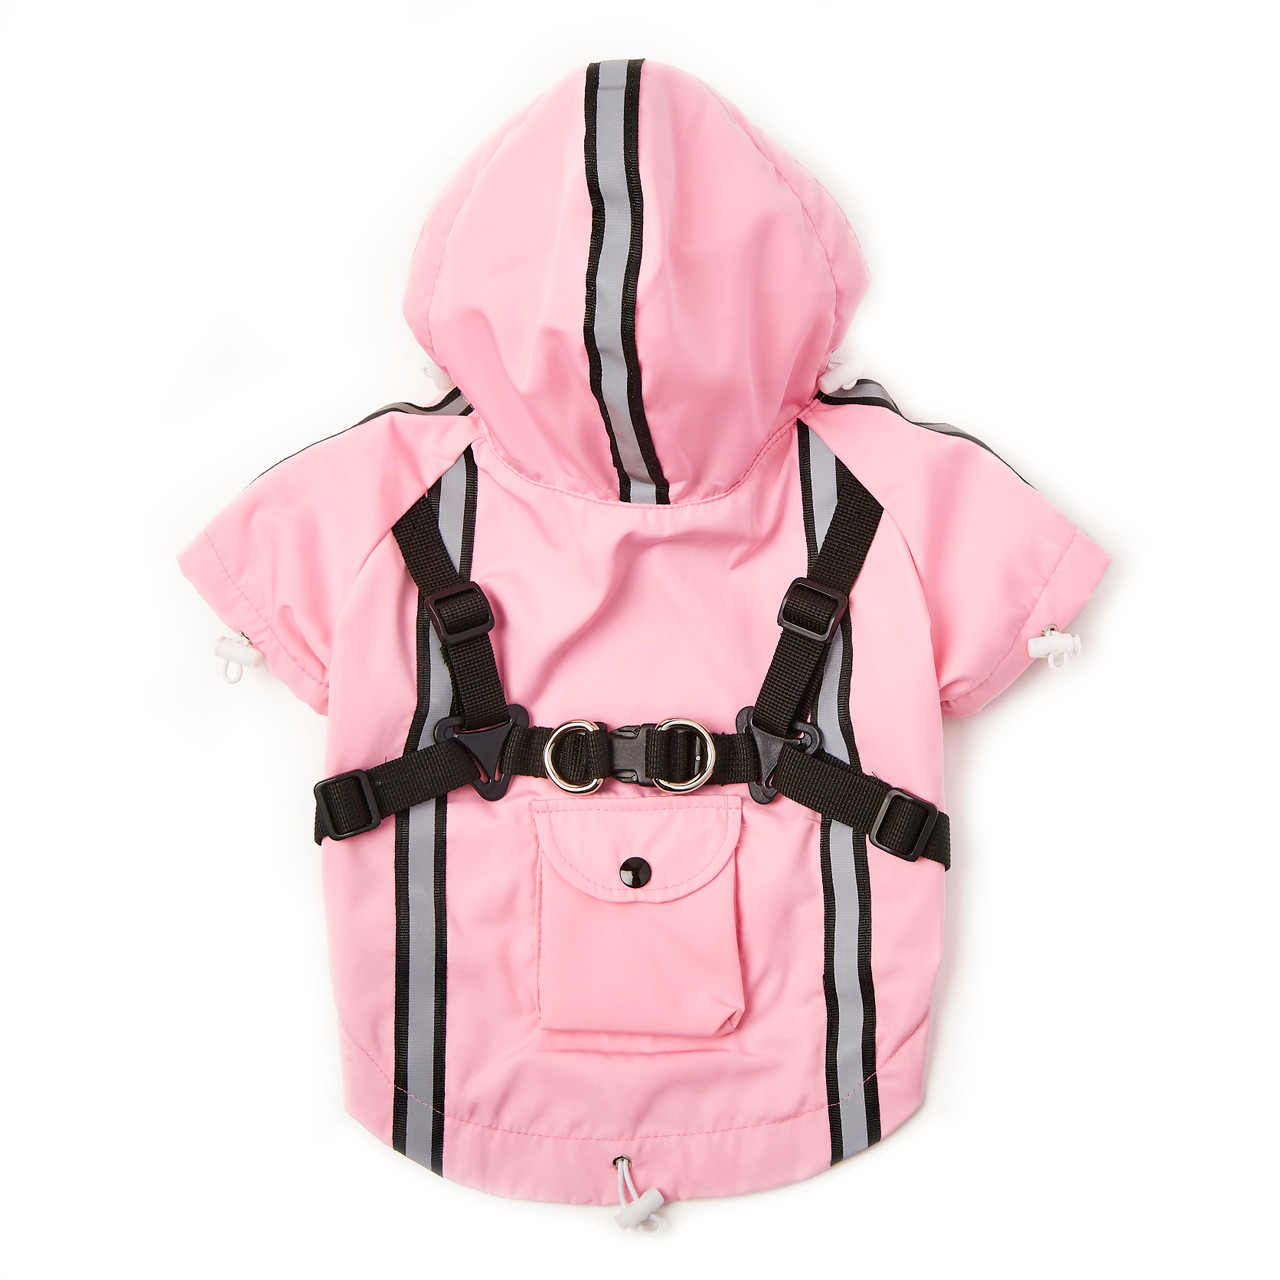 NYD Harness Raincoat with Reflective Trim